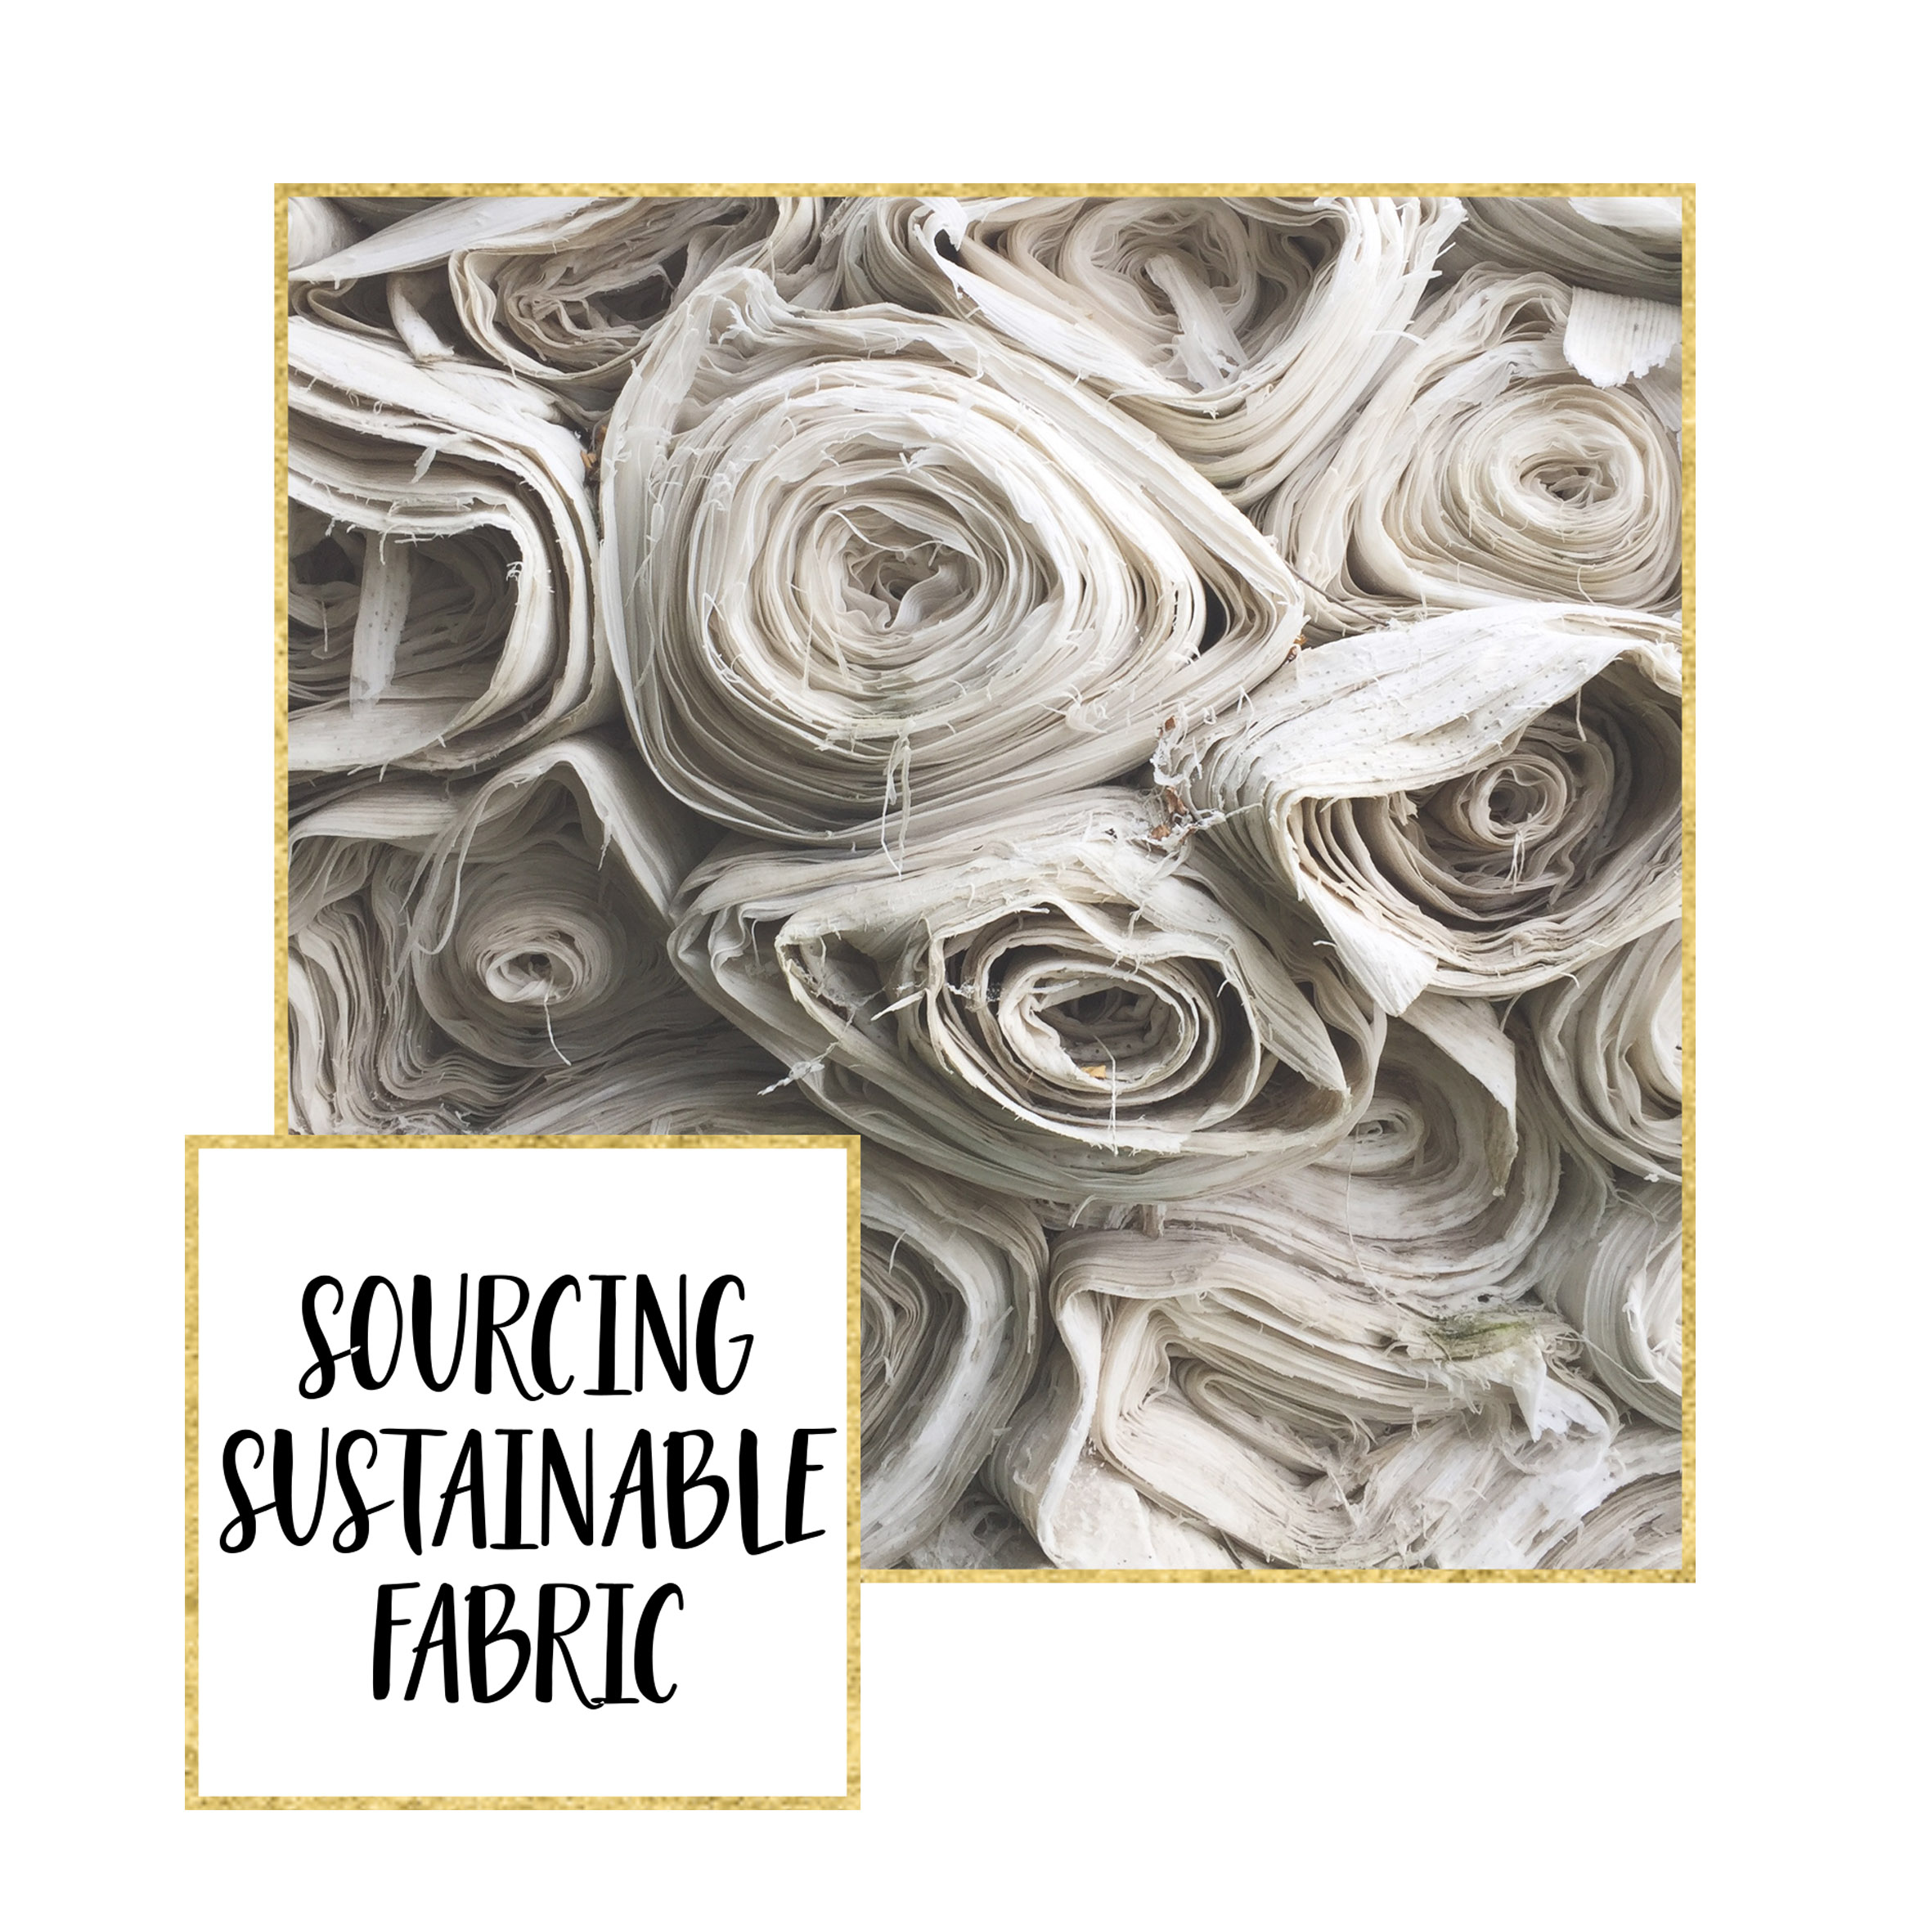 Source sustainable fabrics